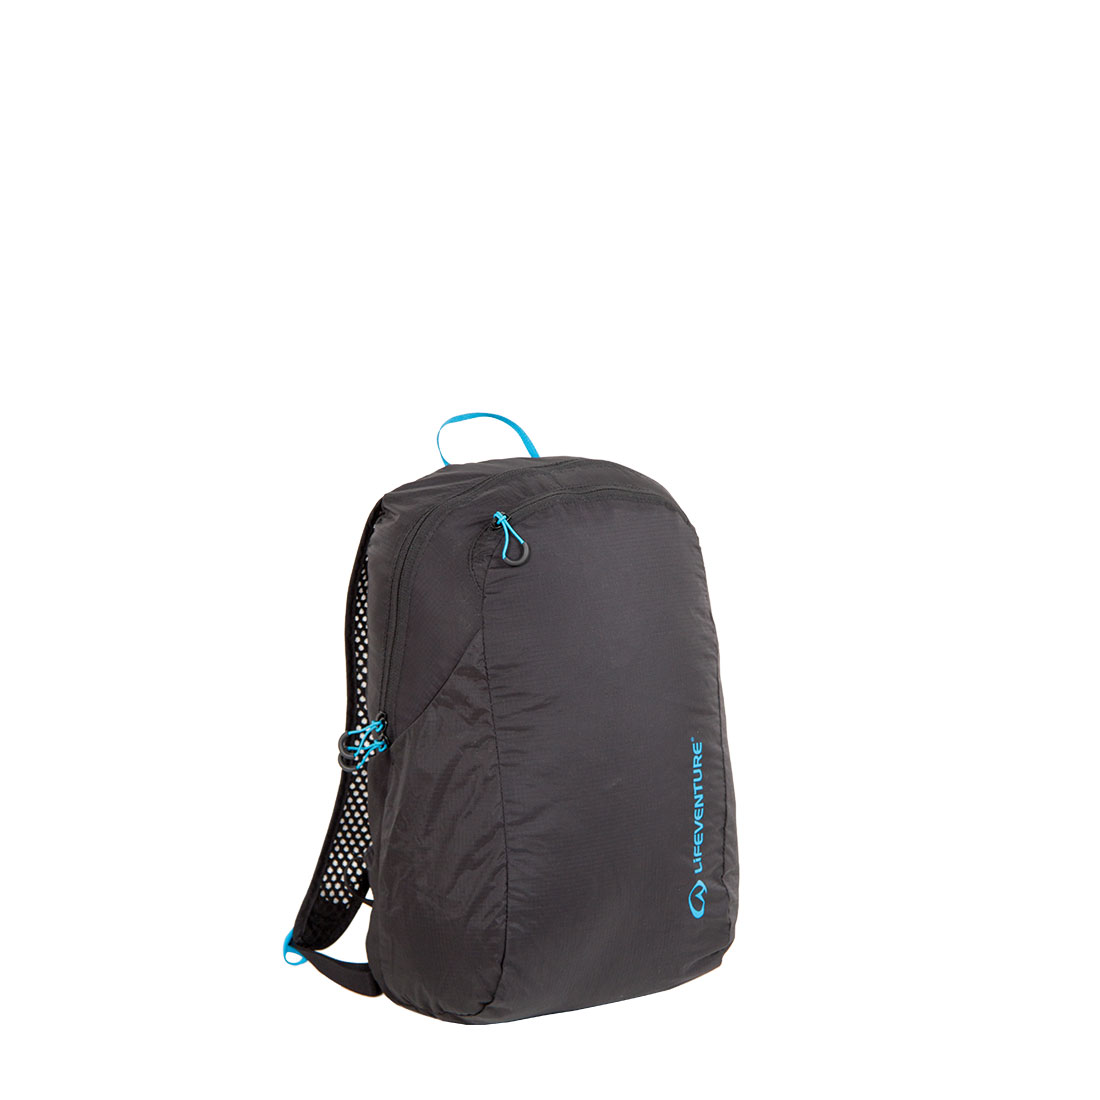 53110_packable-daysack-16l-1